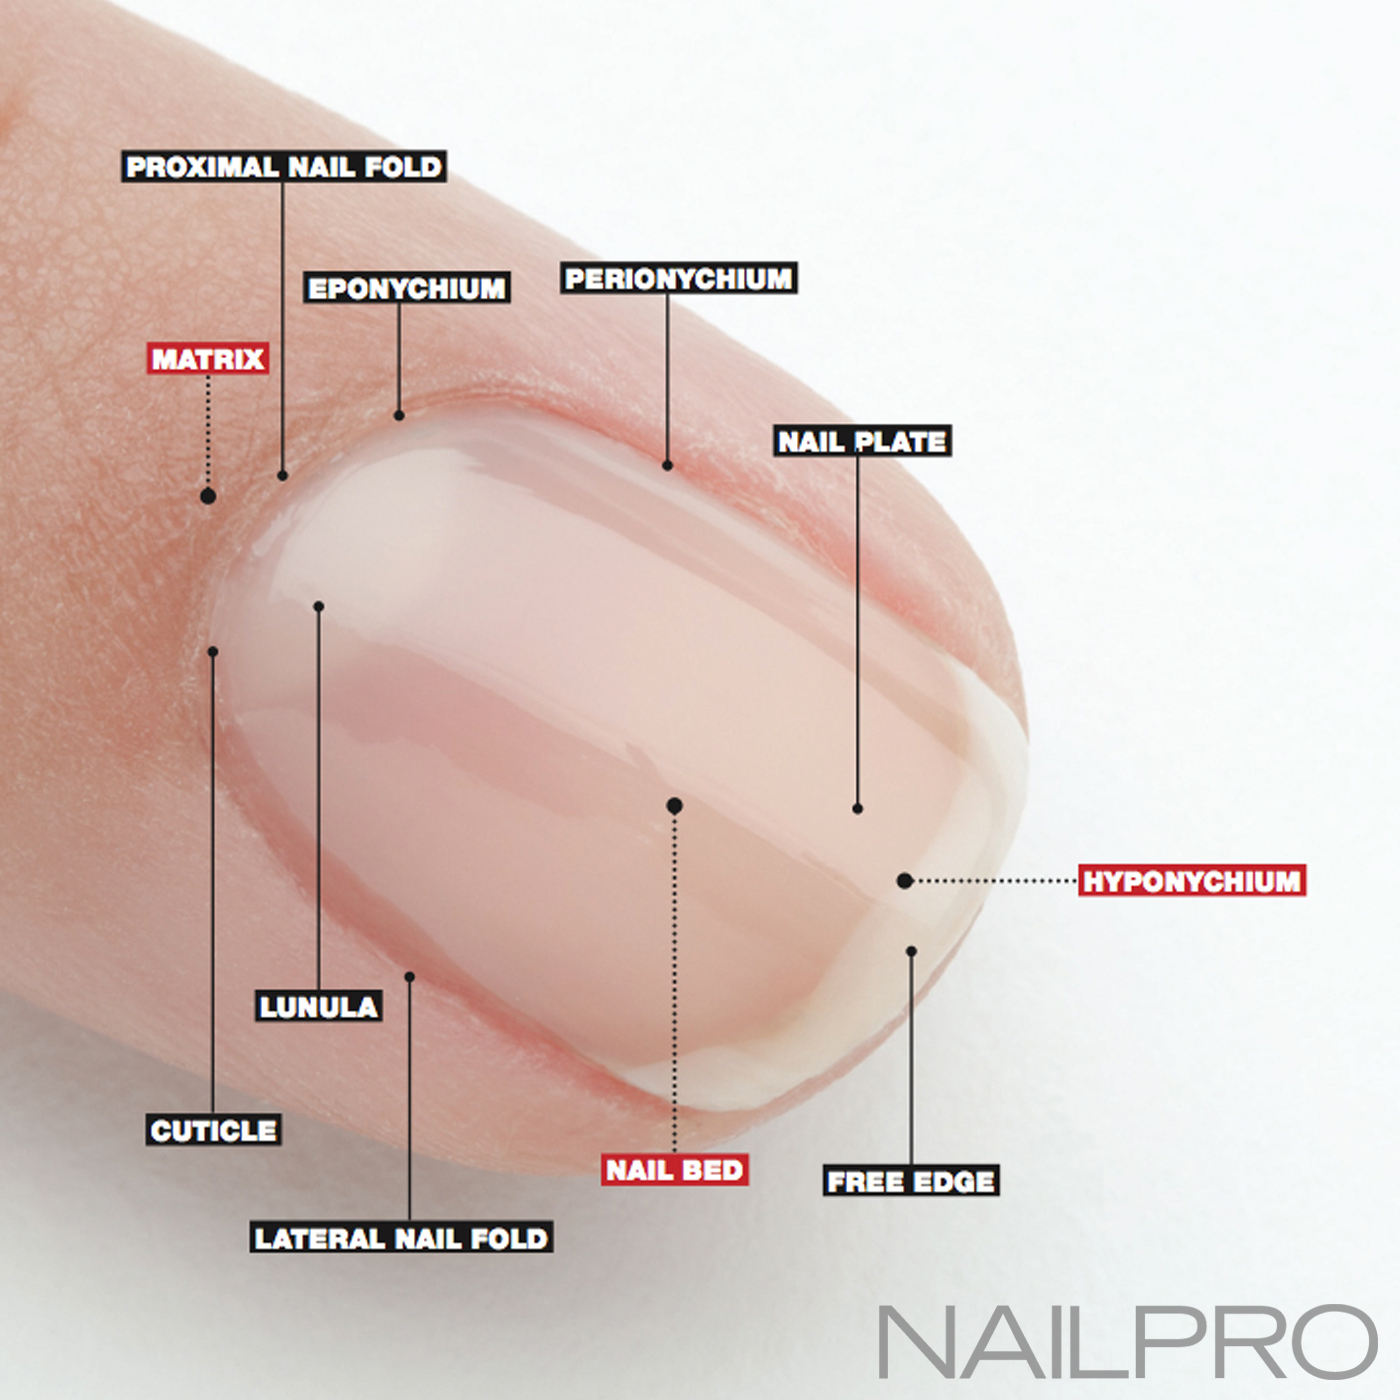 Nail Anatomy: A Professional Primer on the Parts of the Nail